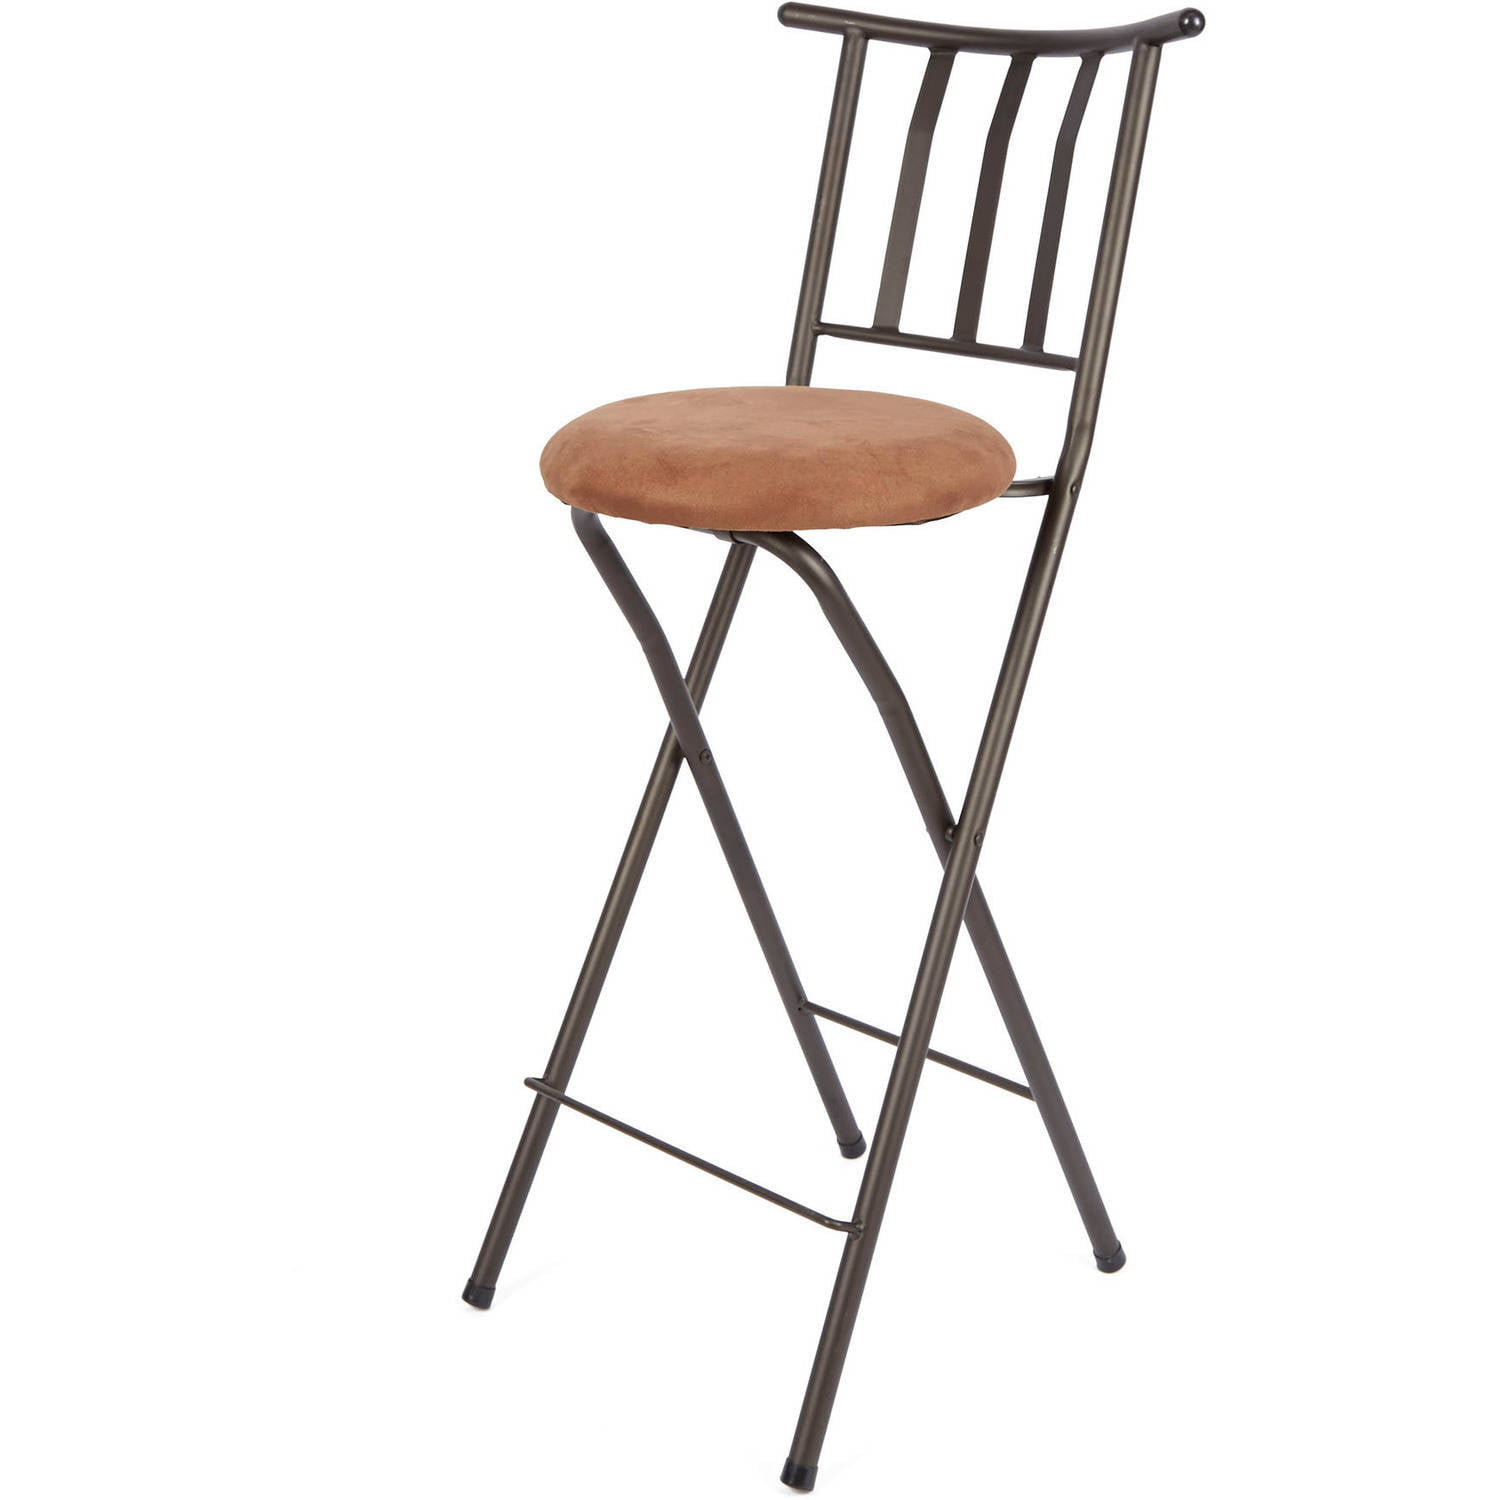 Folding Bar Stools ~ New adjustable folding bar stool bronze chair furniture